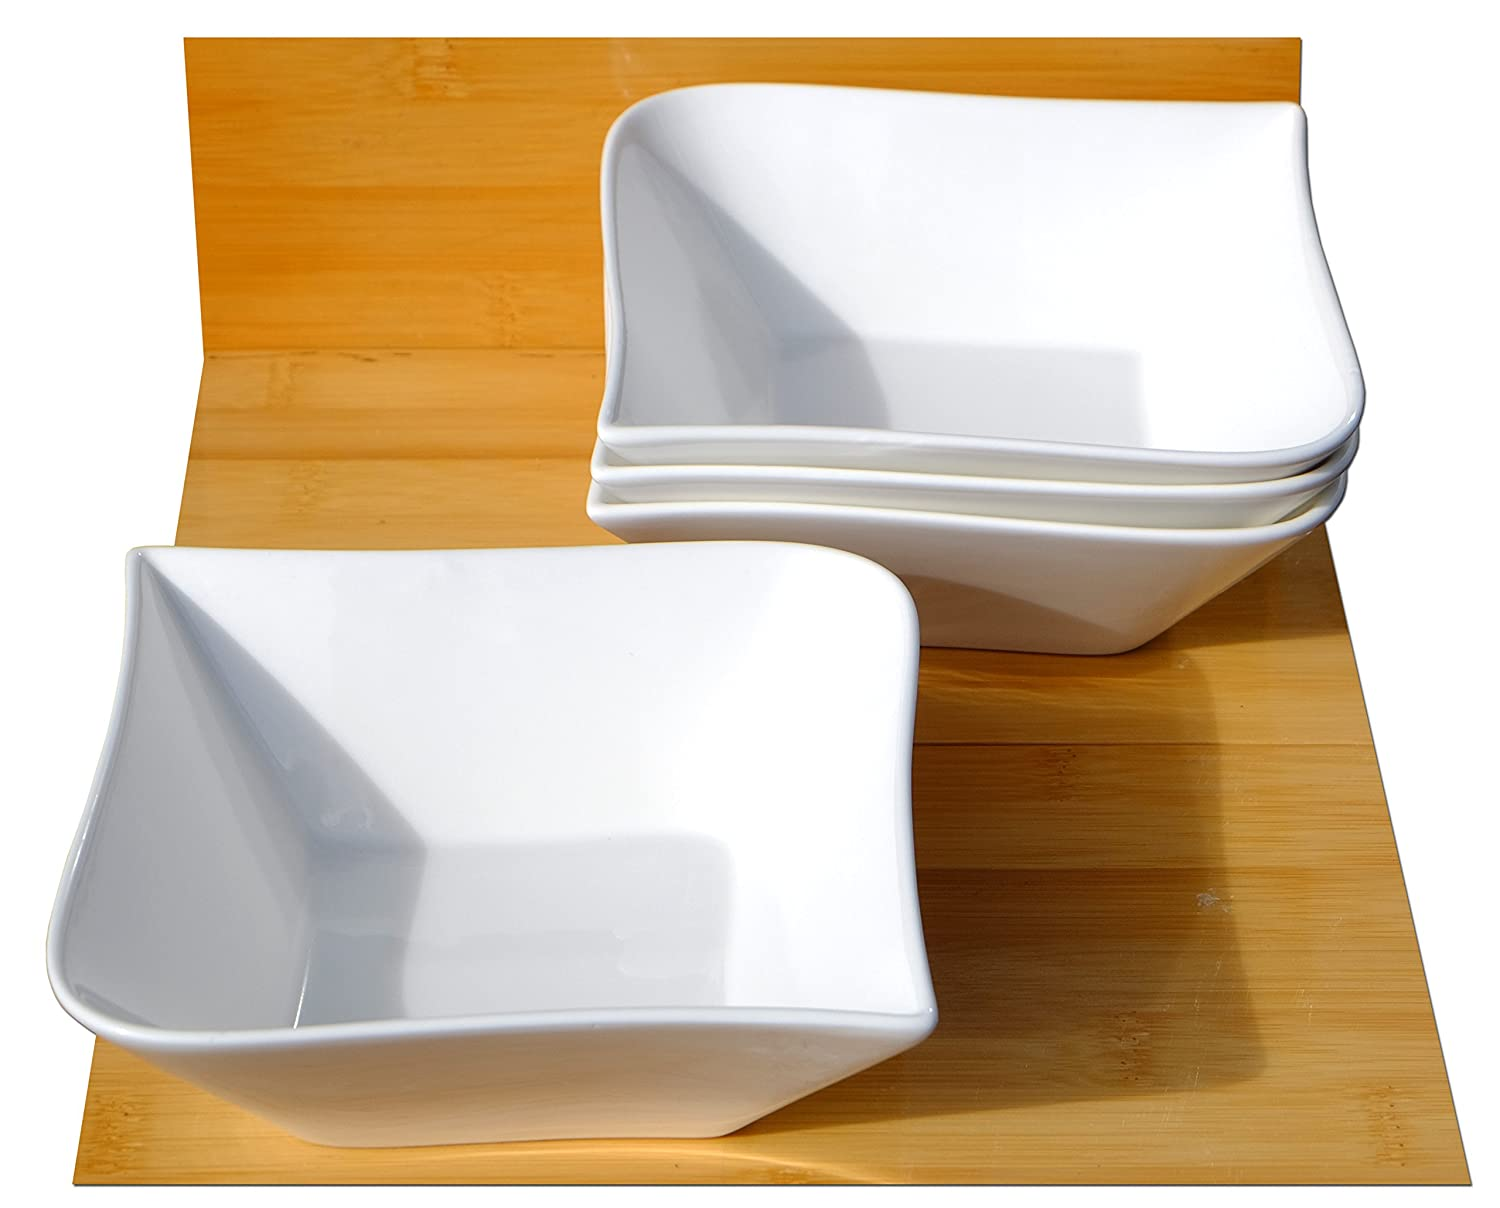 Contemporary serving bowls X 4 white L14cm x W14 x D5cm, and 20cm diagonally Gifts Of The Orient GOTO